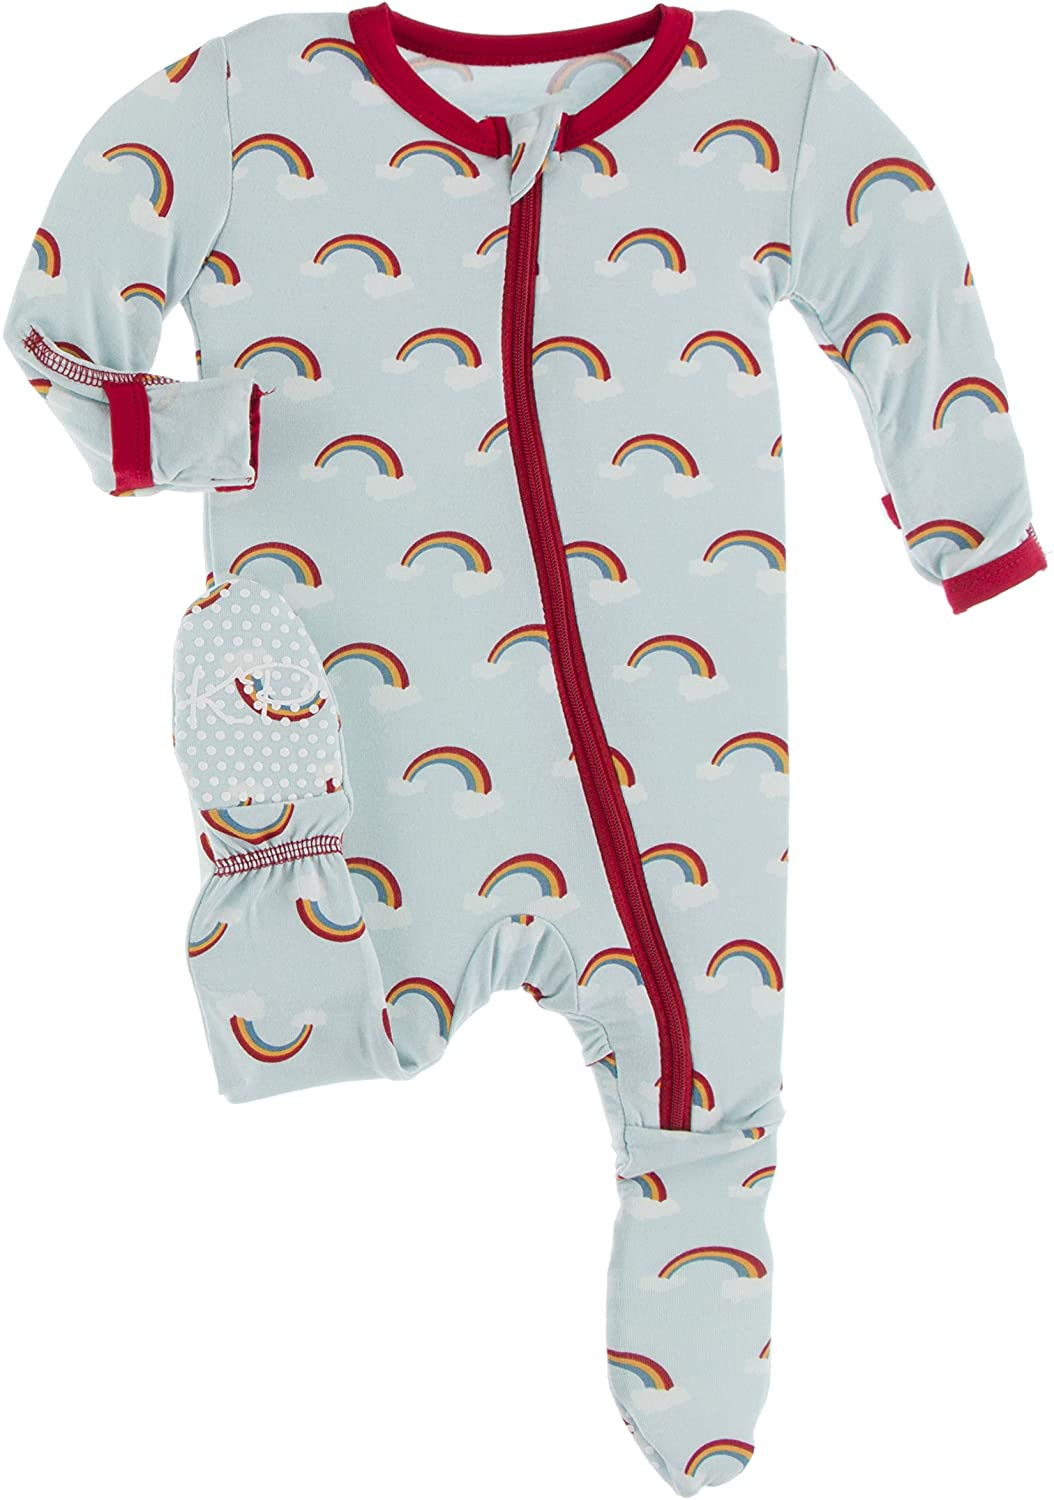 KicKee Pants Welcome Home Footie with or store One-Pi Girl Boy Zipper Phoenix Mall